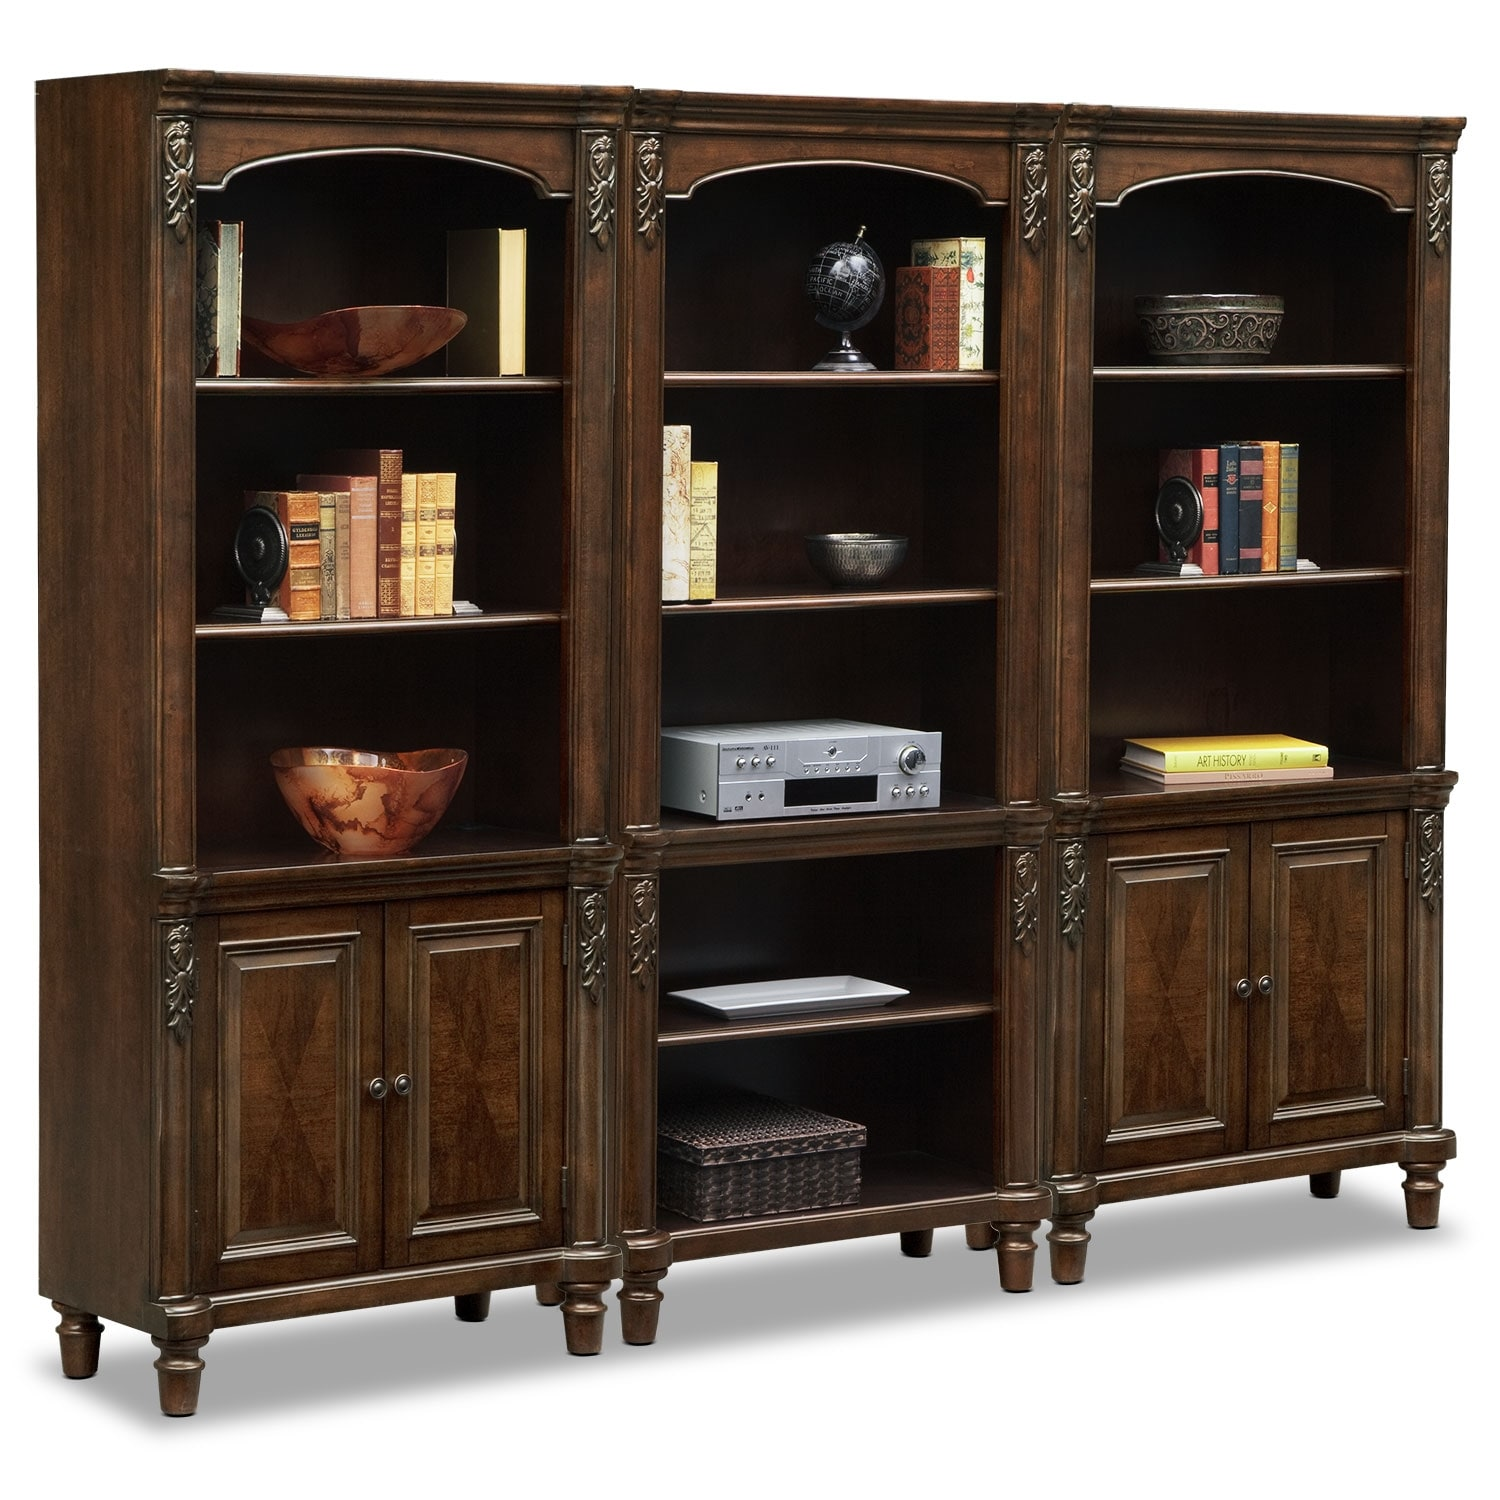 Home Office Furniture - Ashland Wall Bookcase w/ Two Cabinets